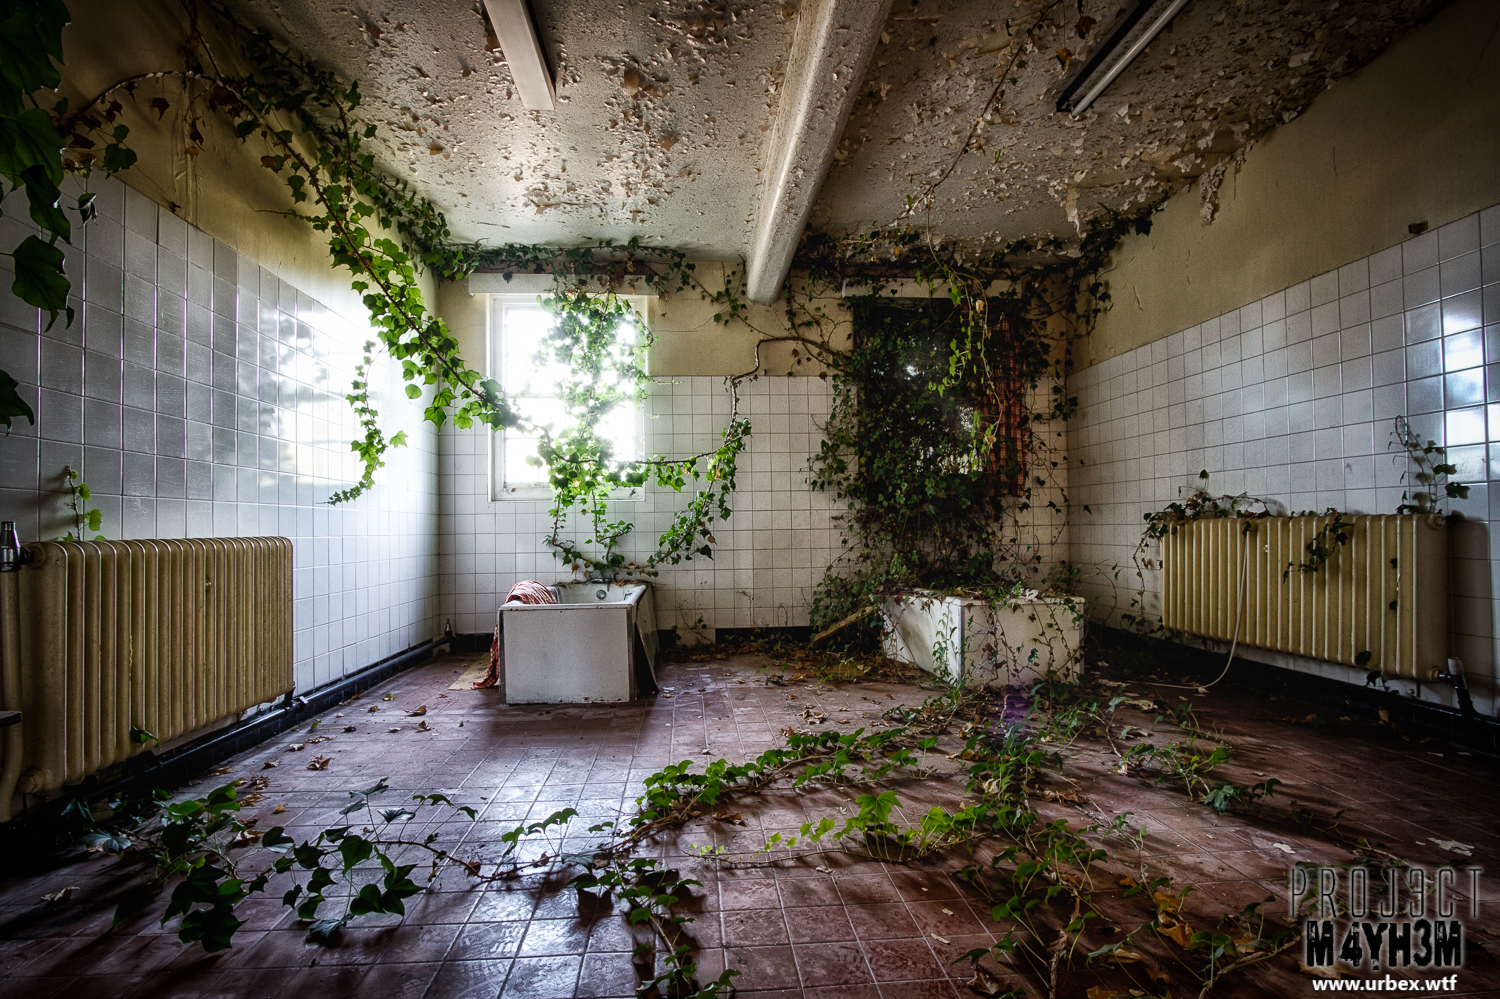 Proj3ctm4yh3m Urban Exploration St Georges Asylum Aka Northumberland County Pauper Lunatic Asylum Aka Ivy Hospital Morpeth October 2013